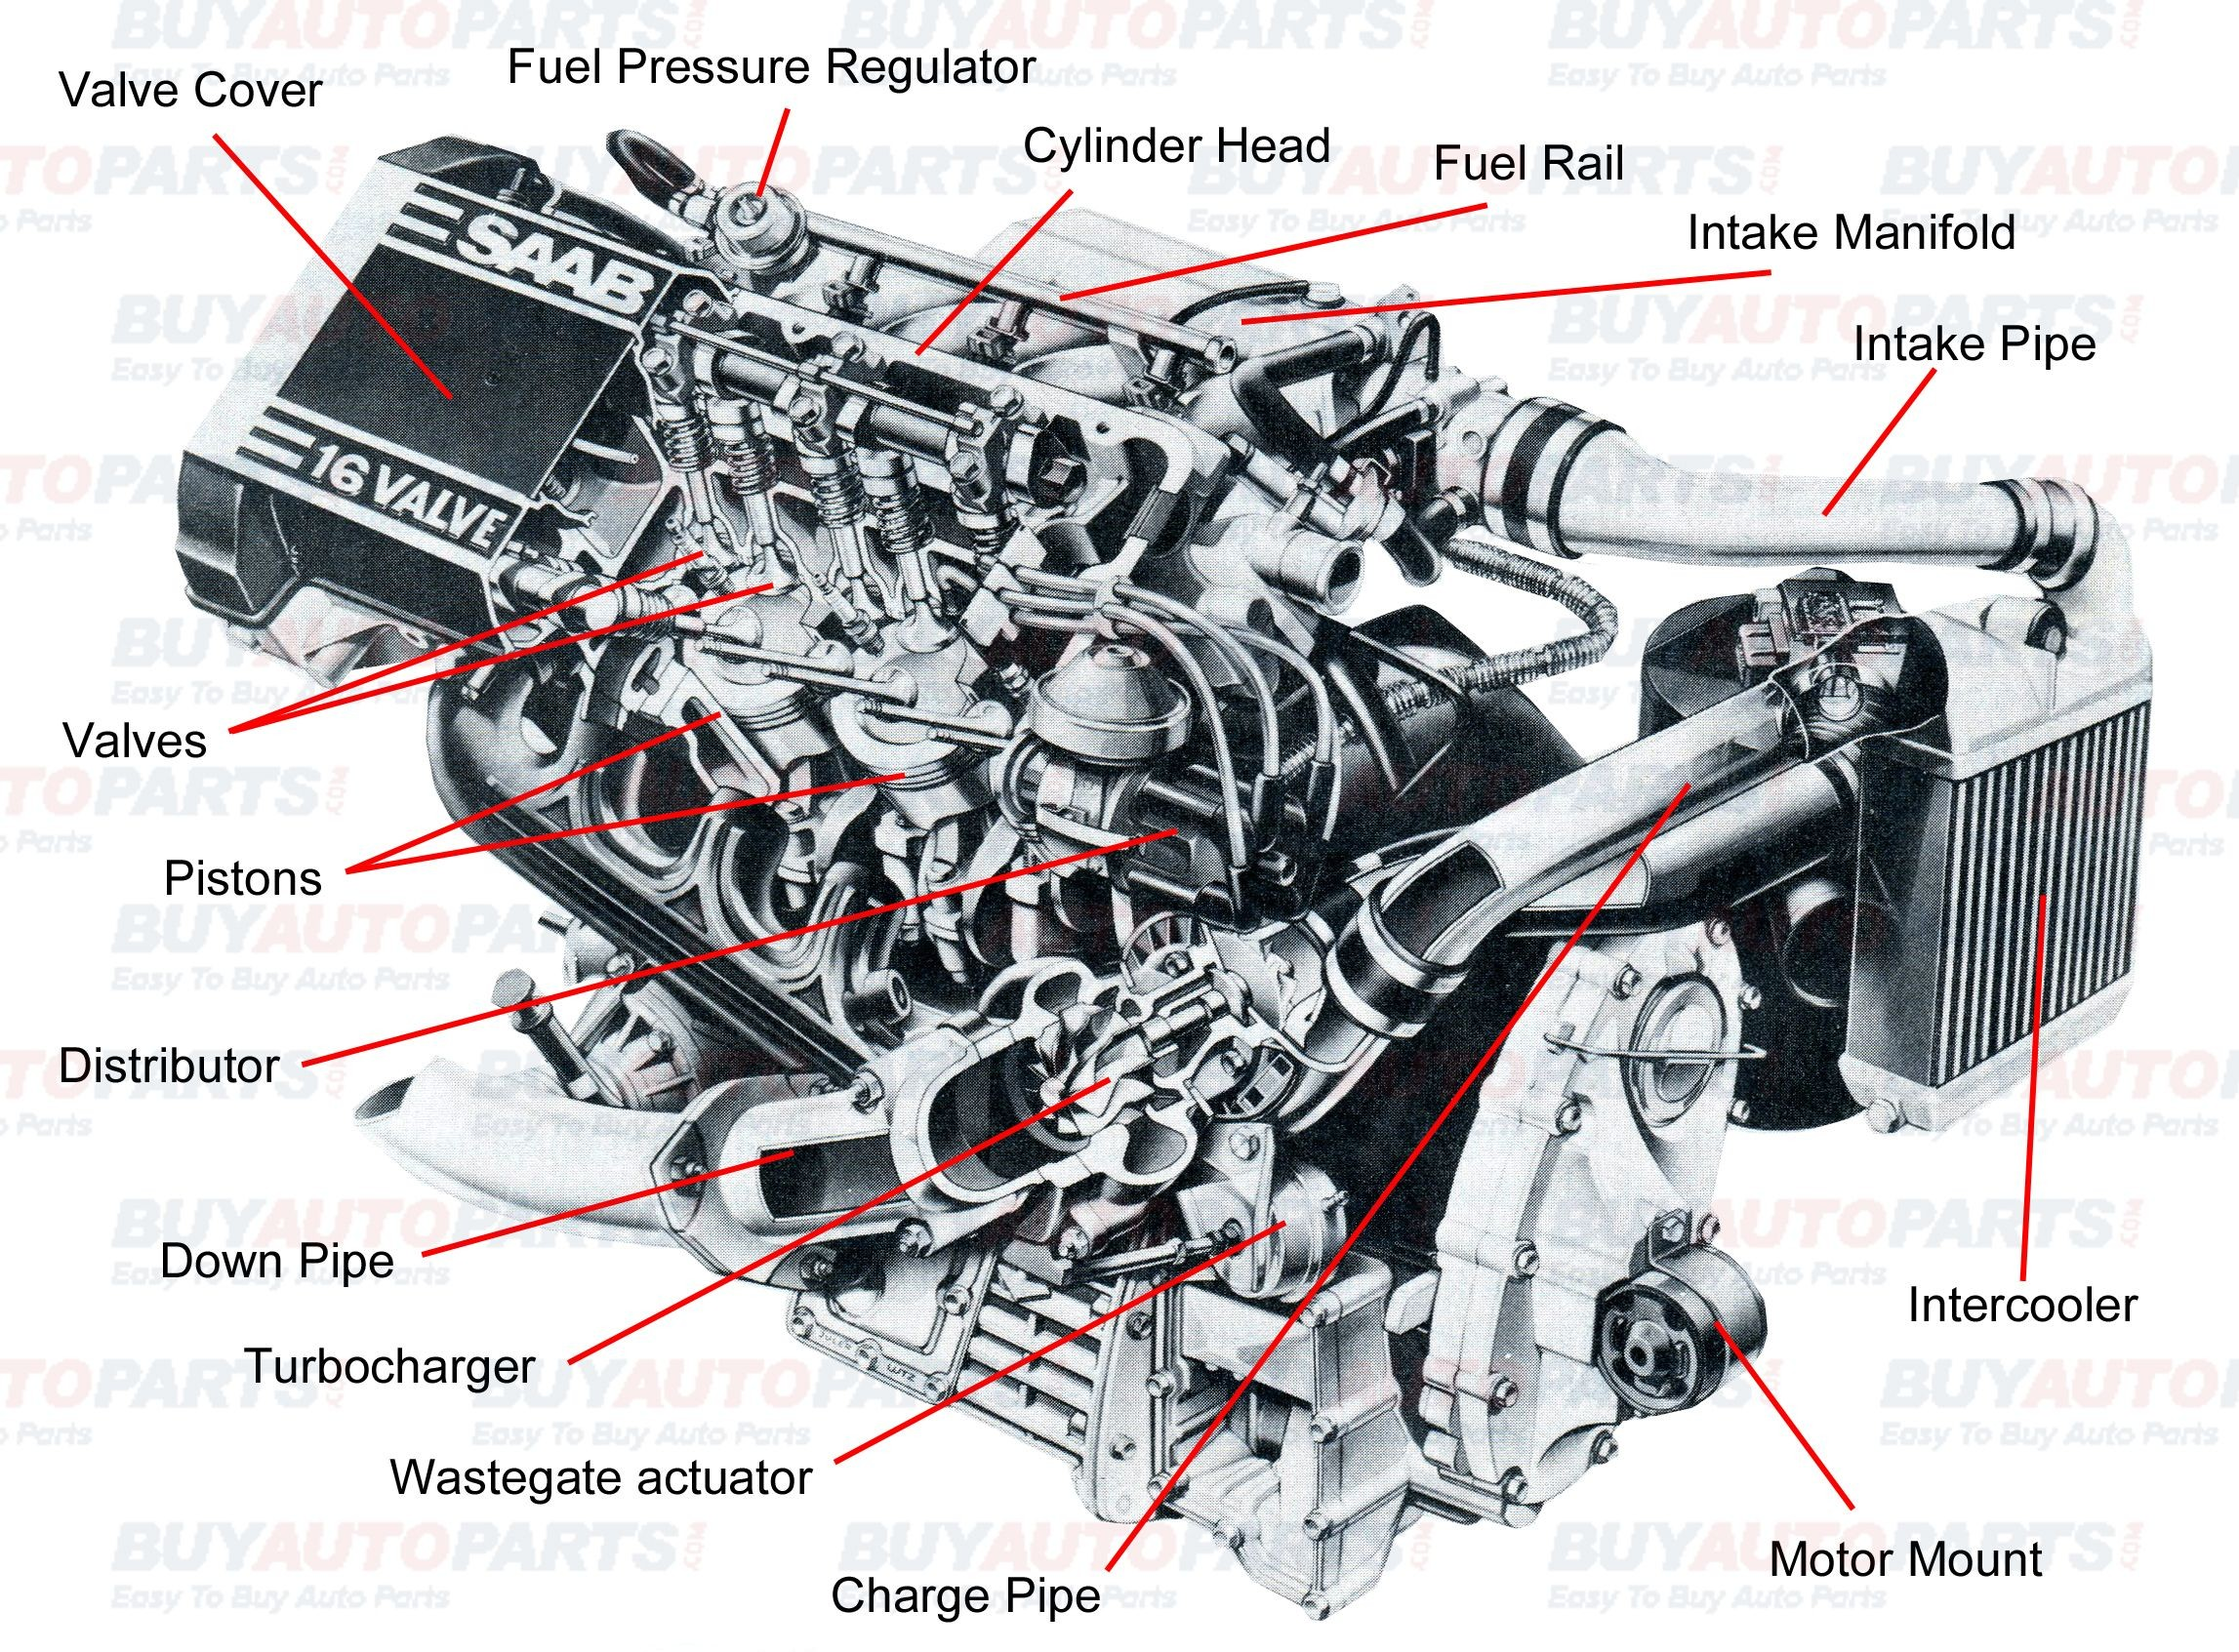 Diagram Of Car Engine How It Works Pin by Jimmiejanet Testellamwfz On What Does An Engine with Turbo